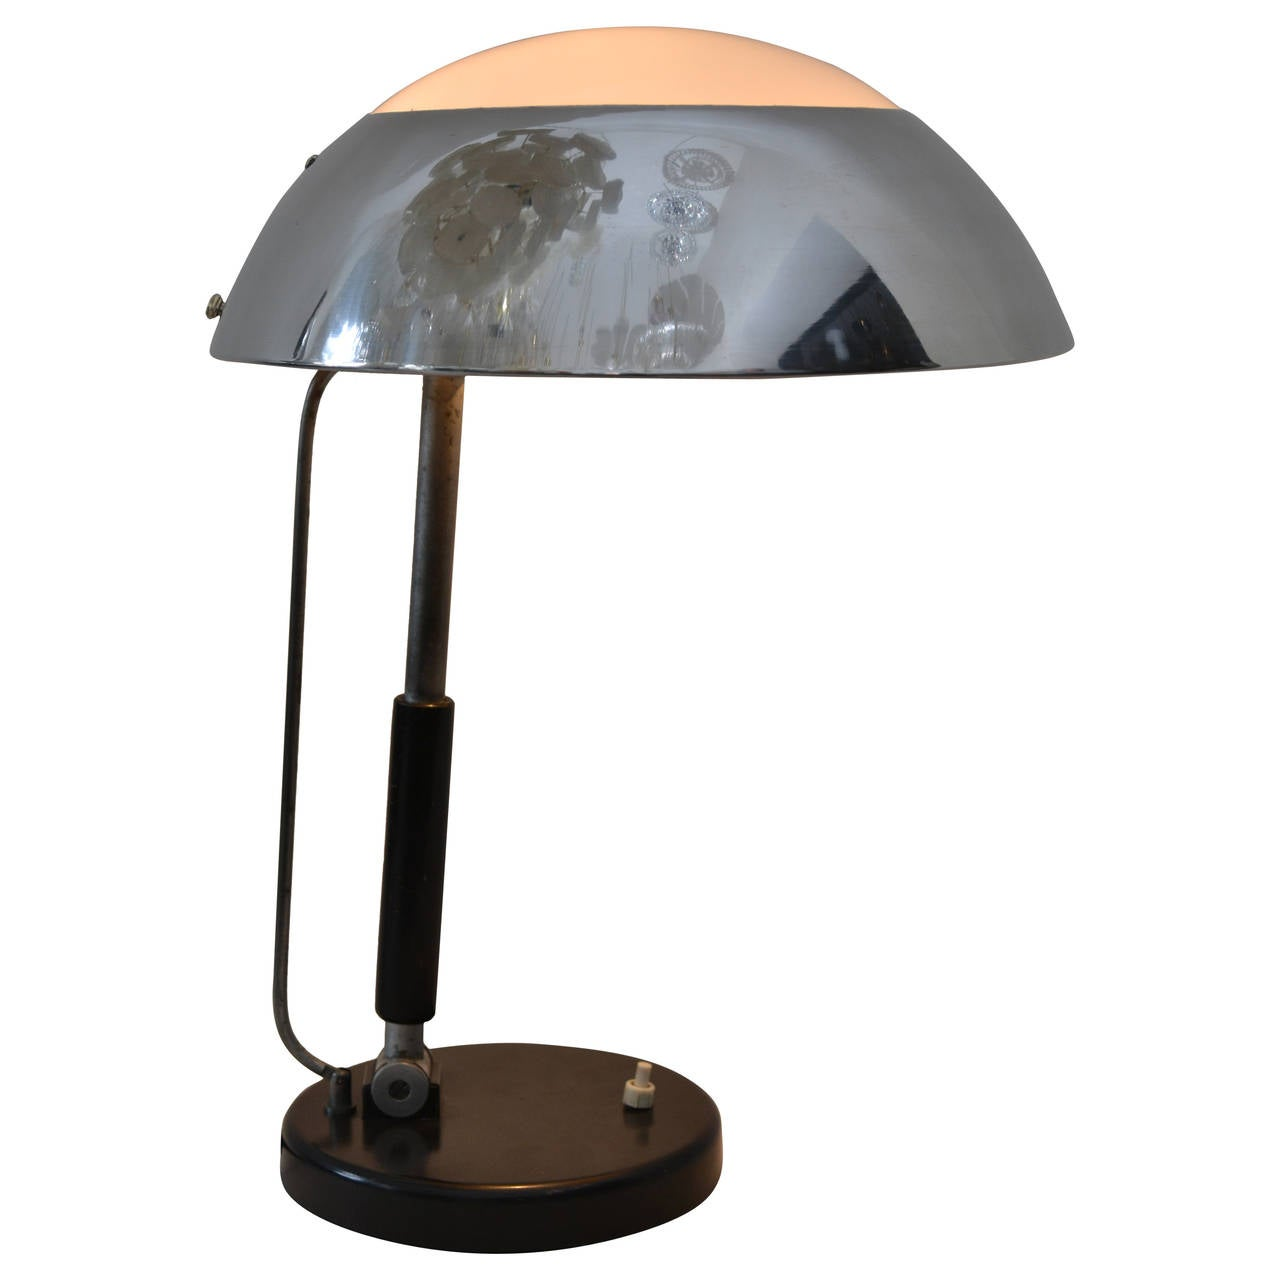 karl trabert industrial design desk lamp for sale at 1stdibs